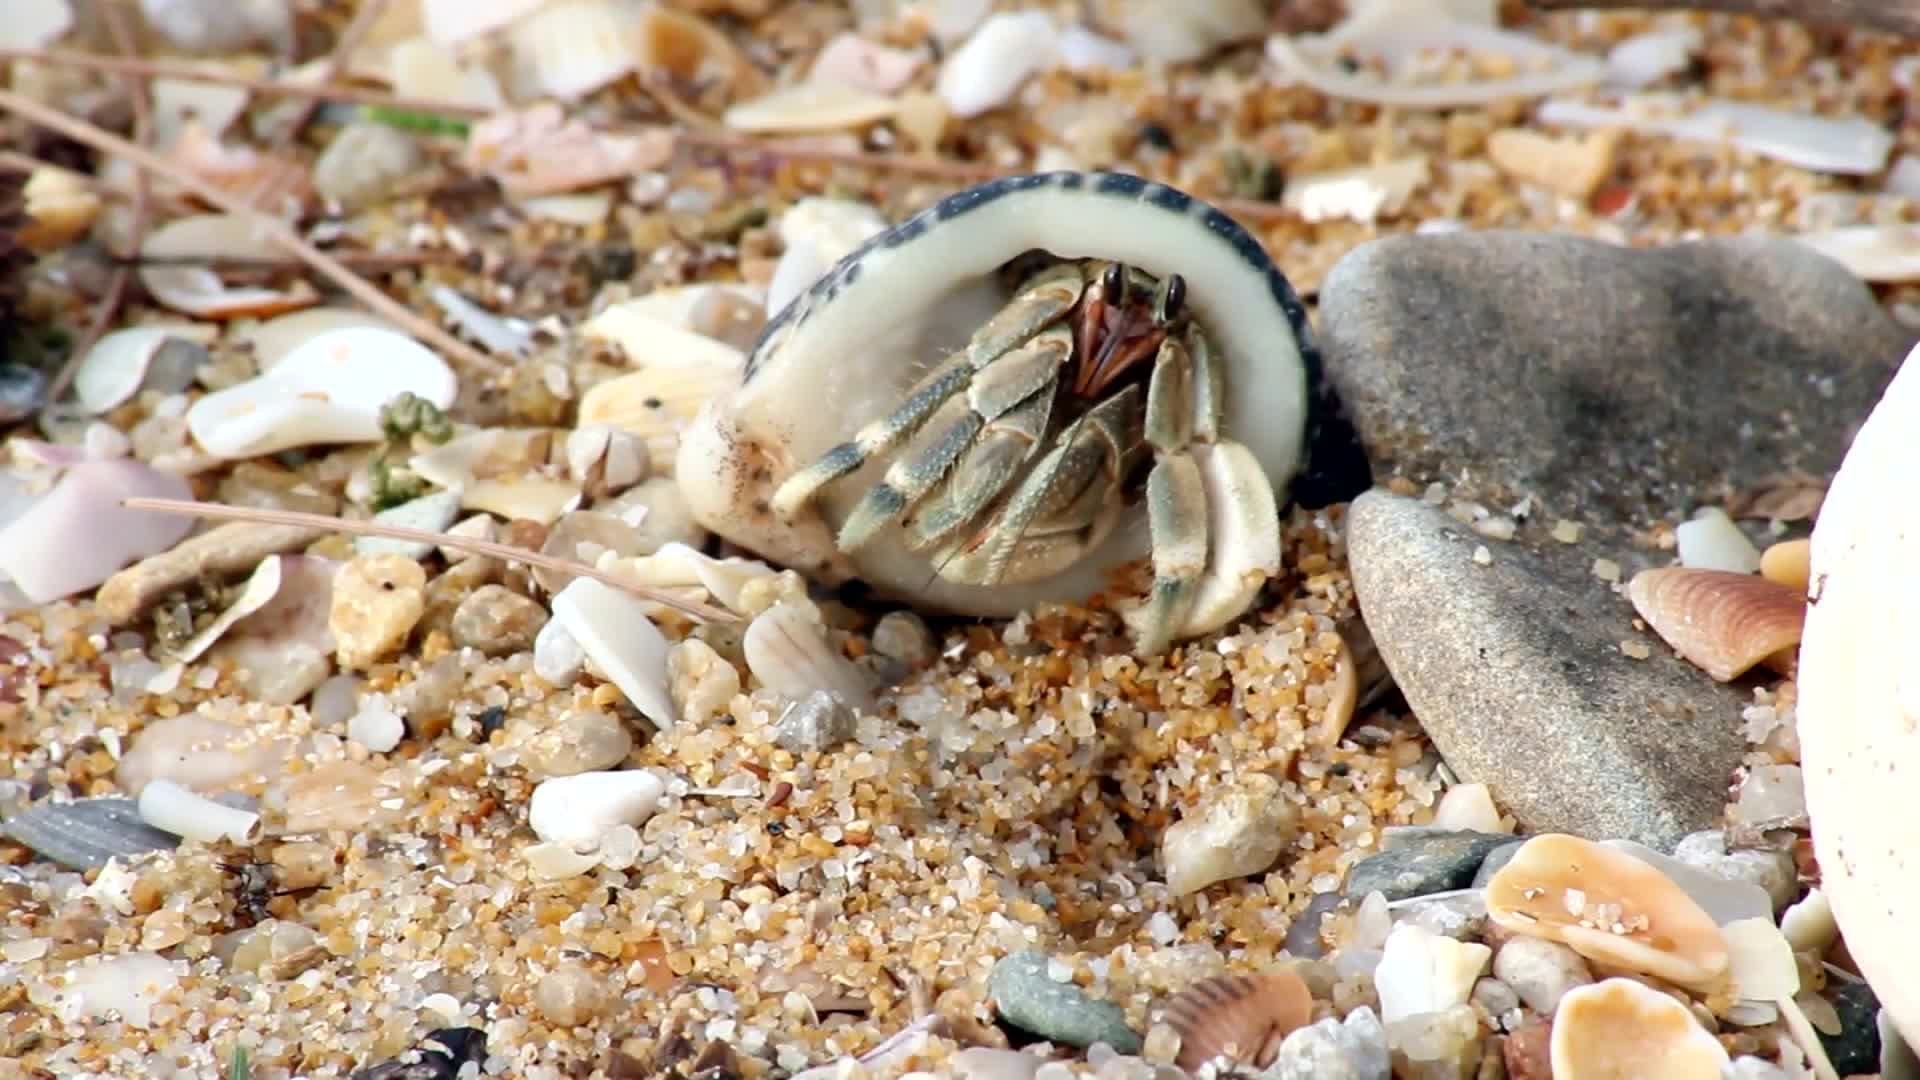 Crab beach animal shell legs